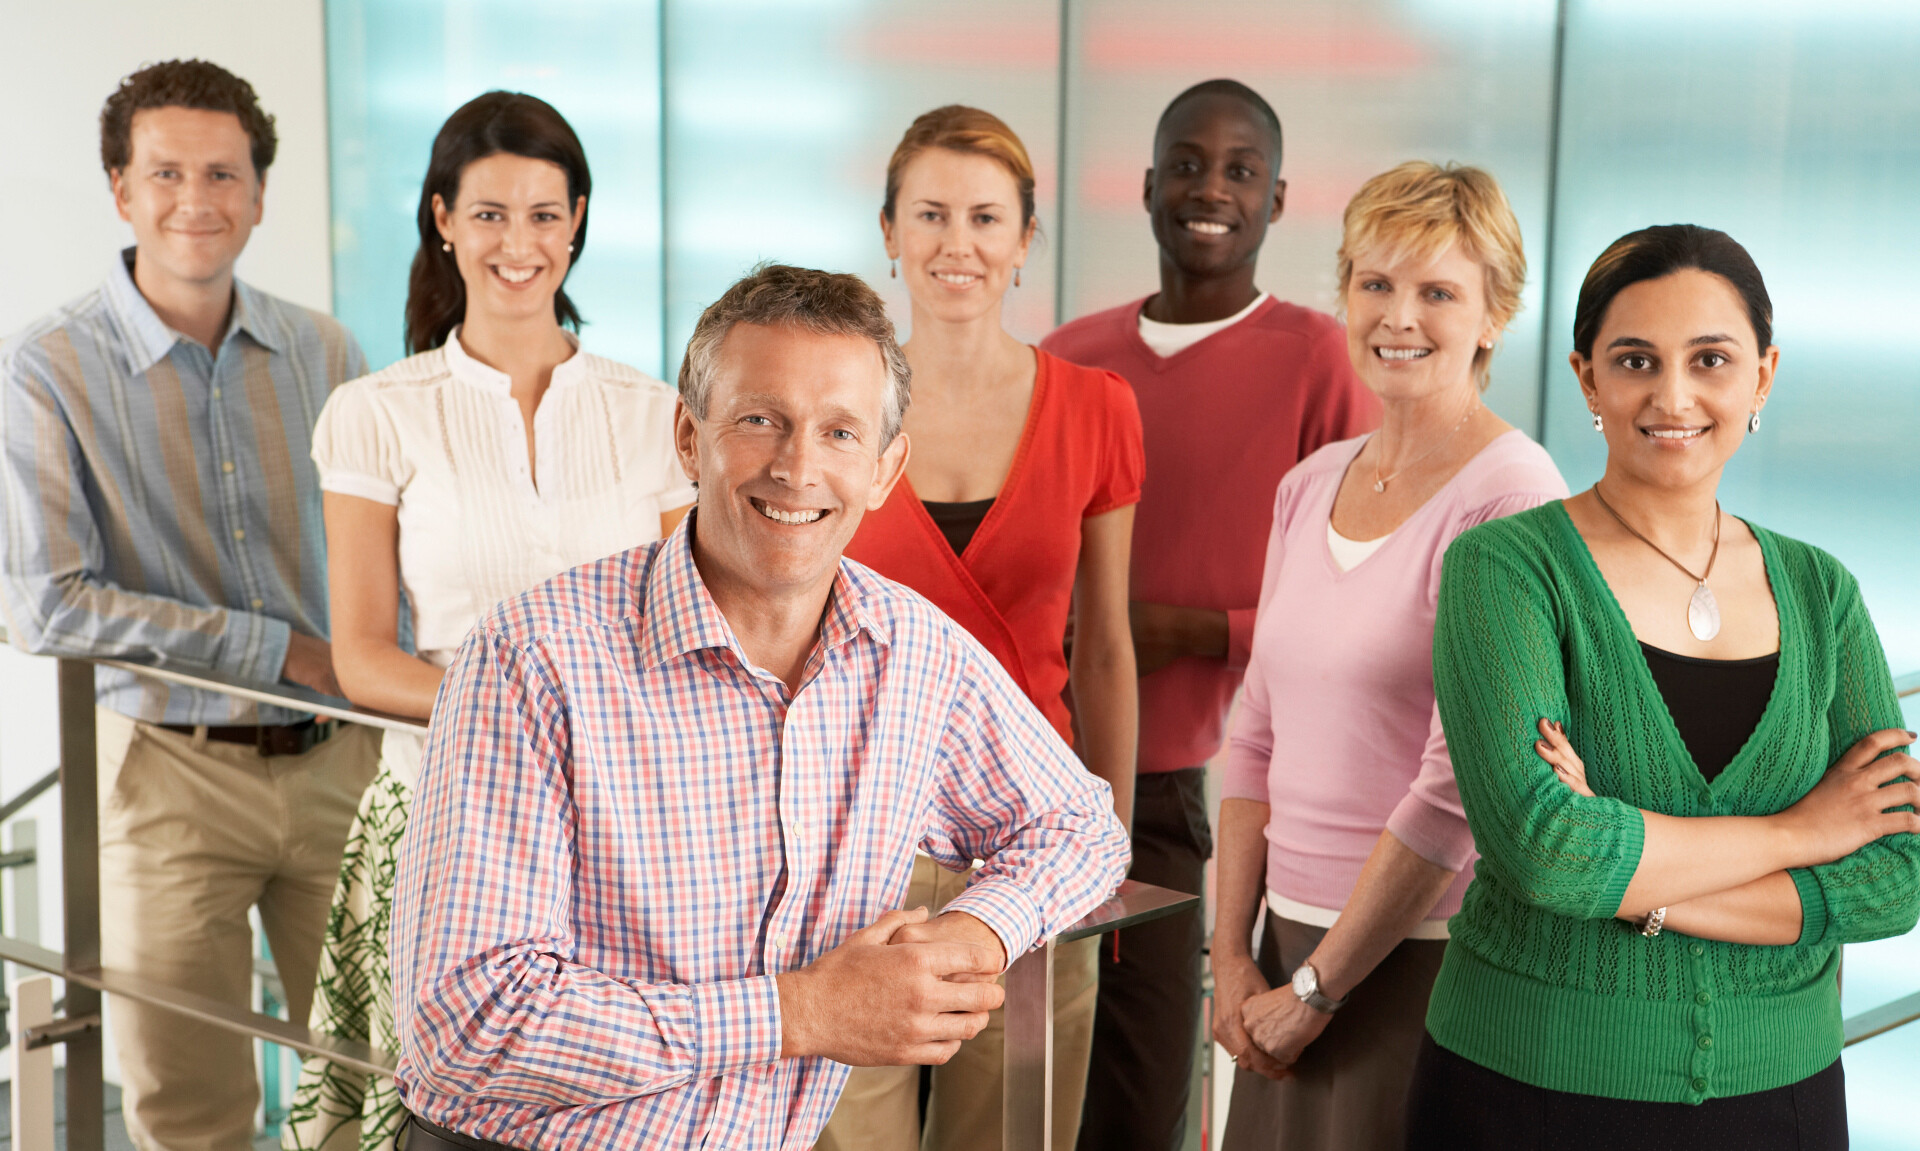 Skills Supervisors Need to Achieve Results Among Their Team